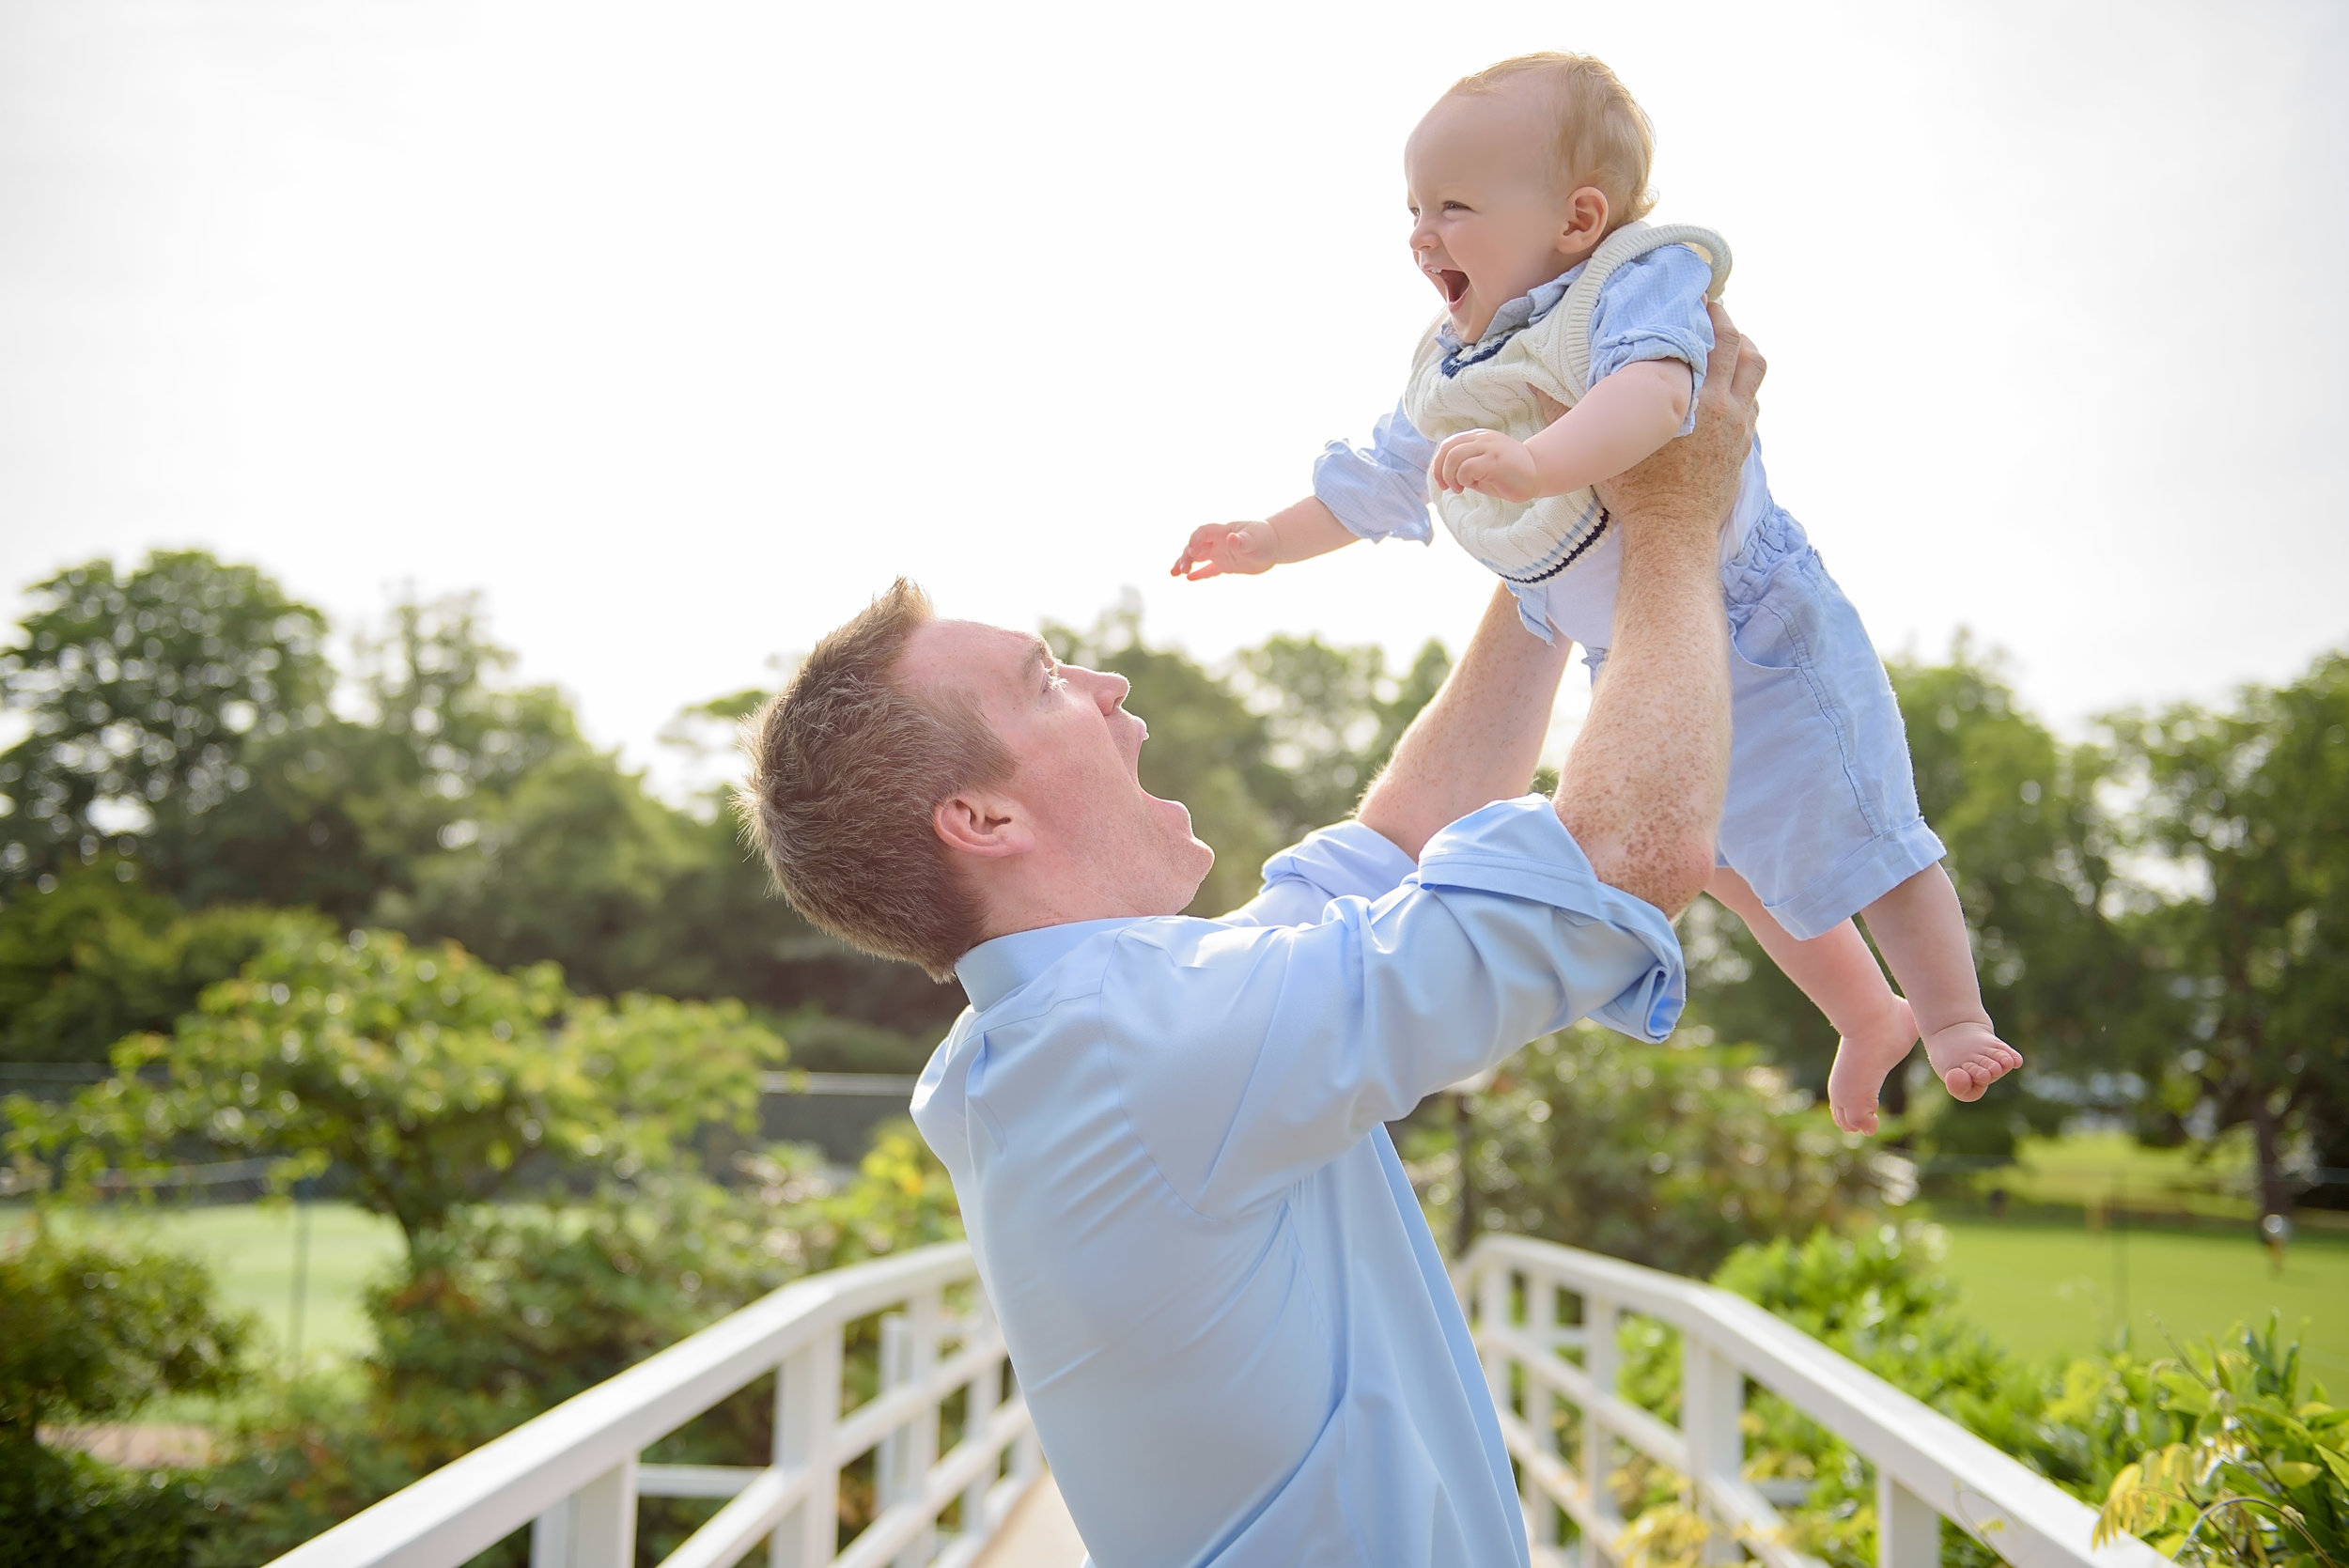 A family photo session at the Hurlingham club